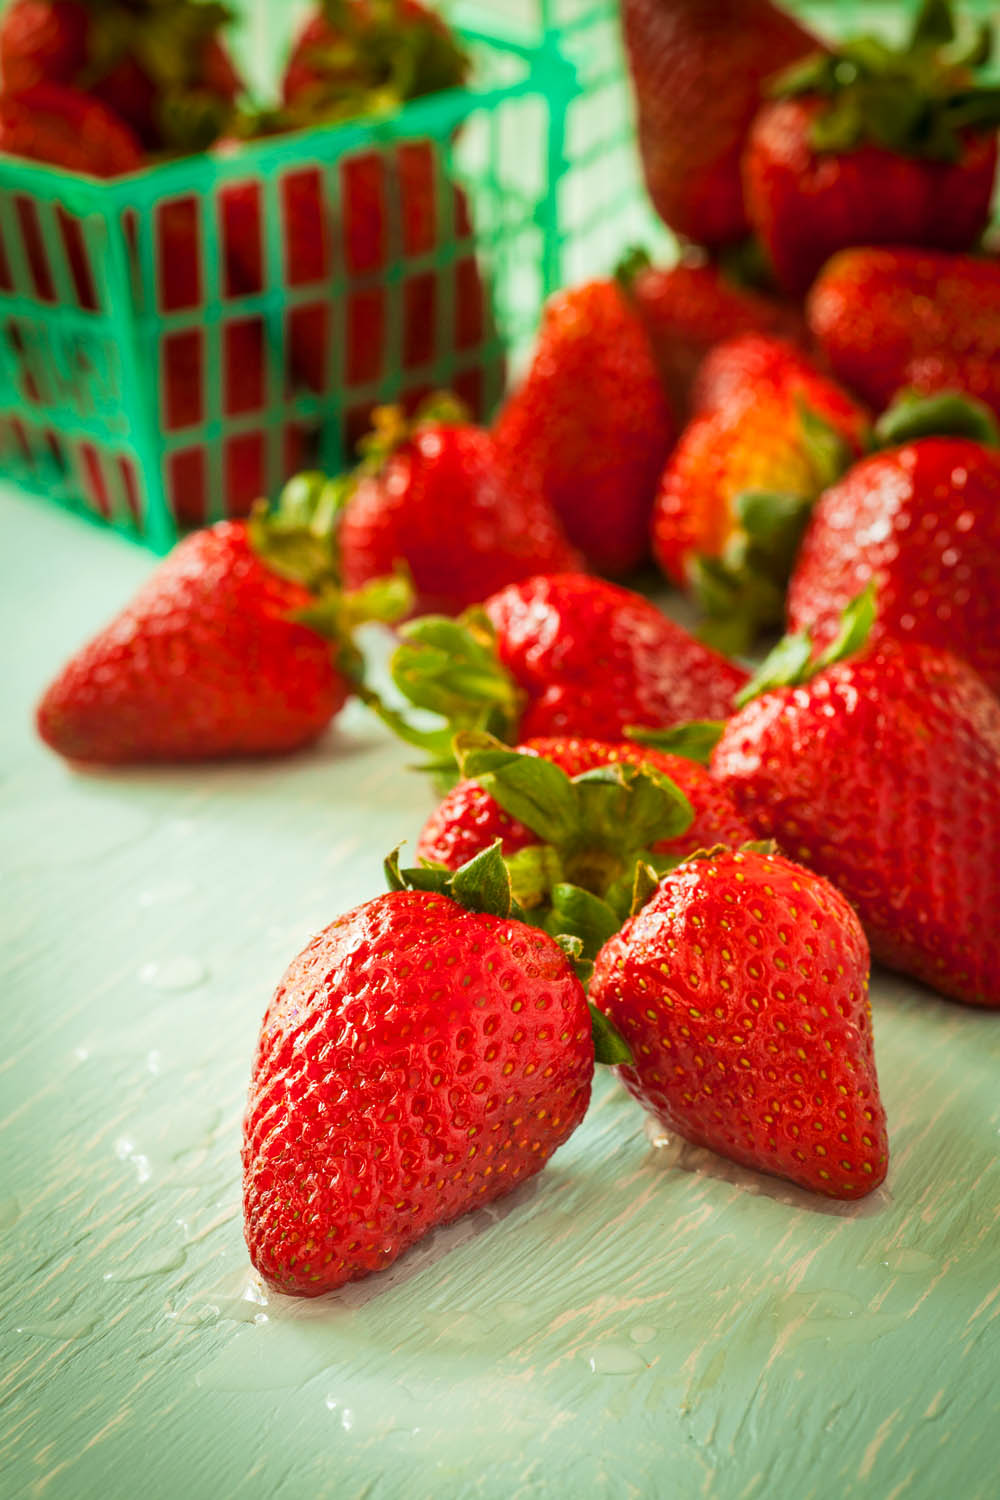 Photographing strawberries at a low angle